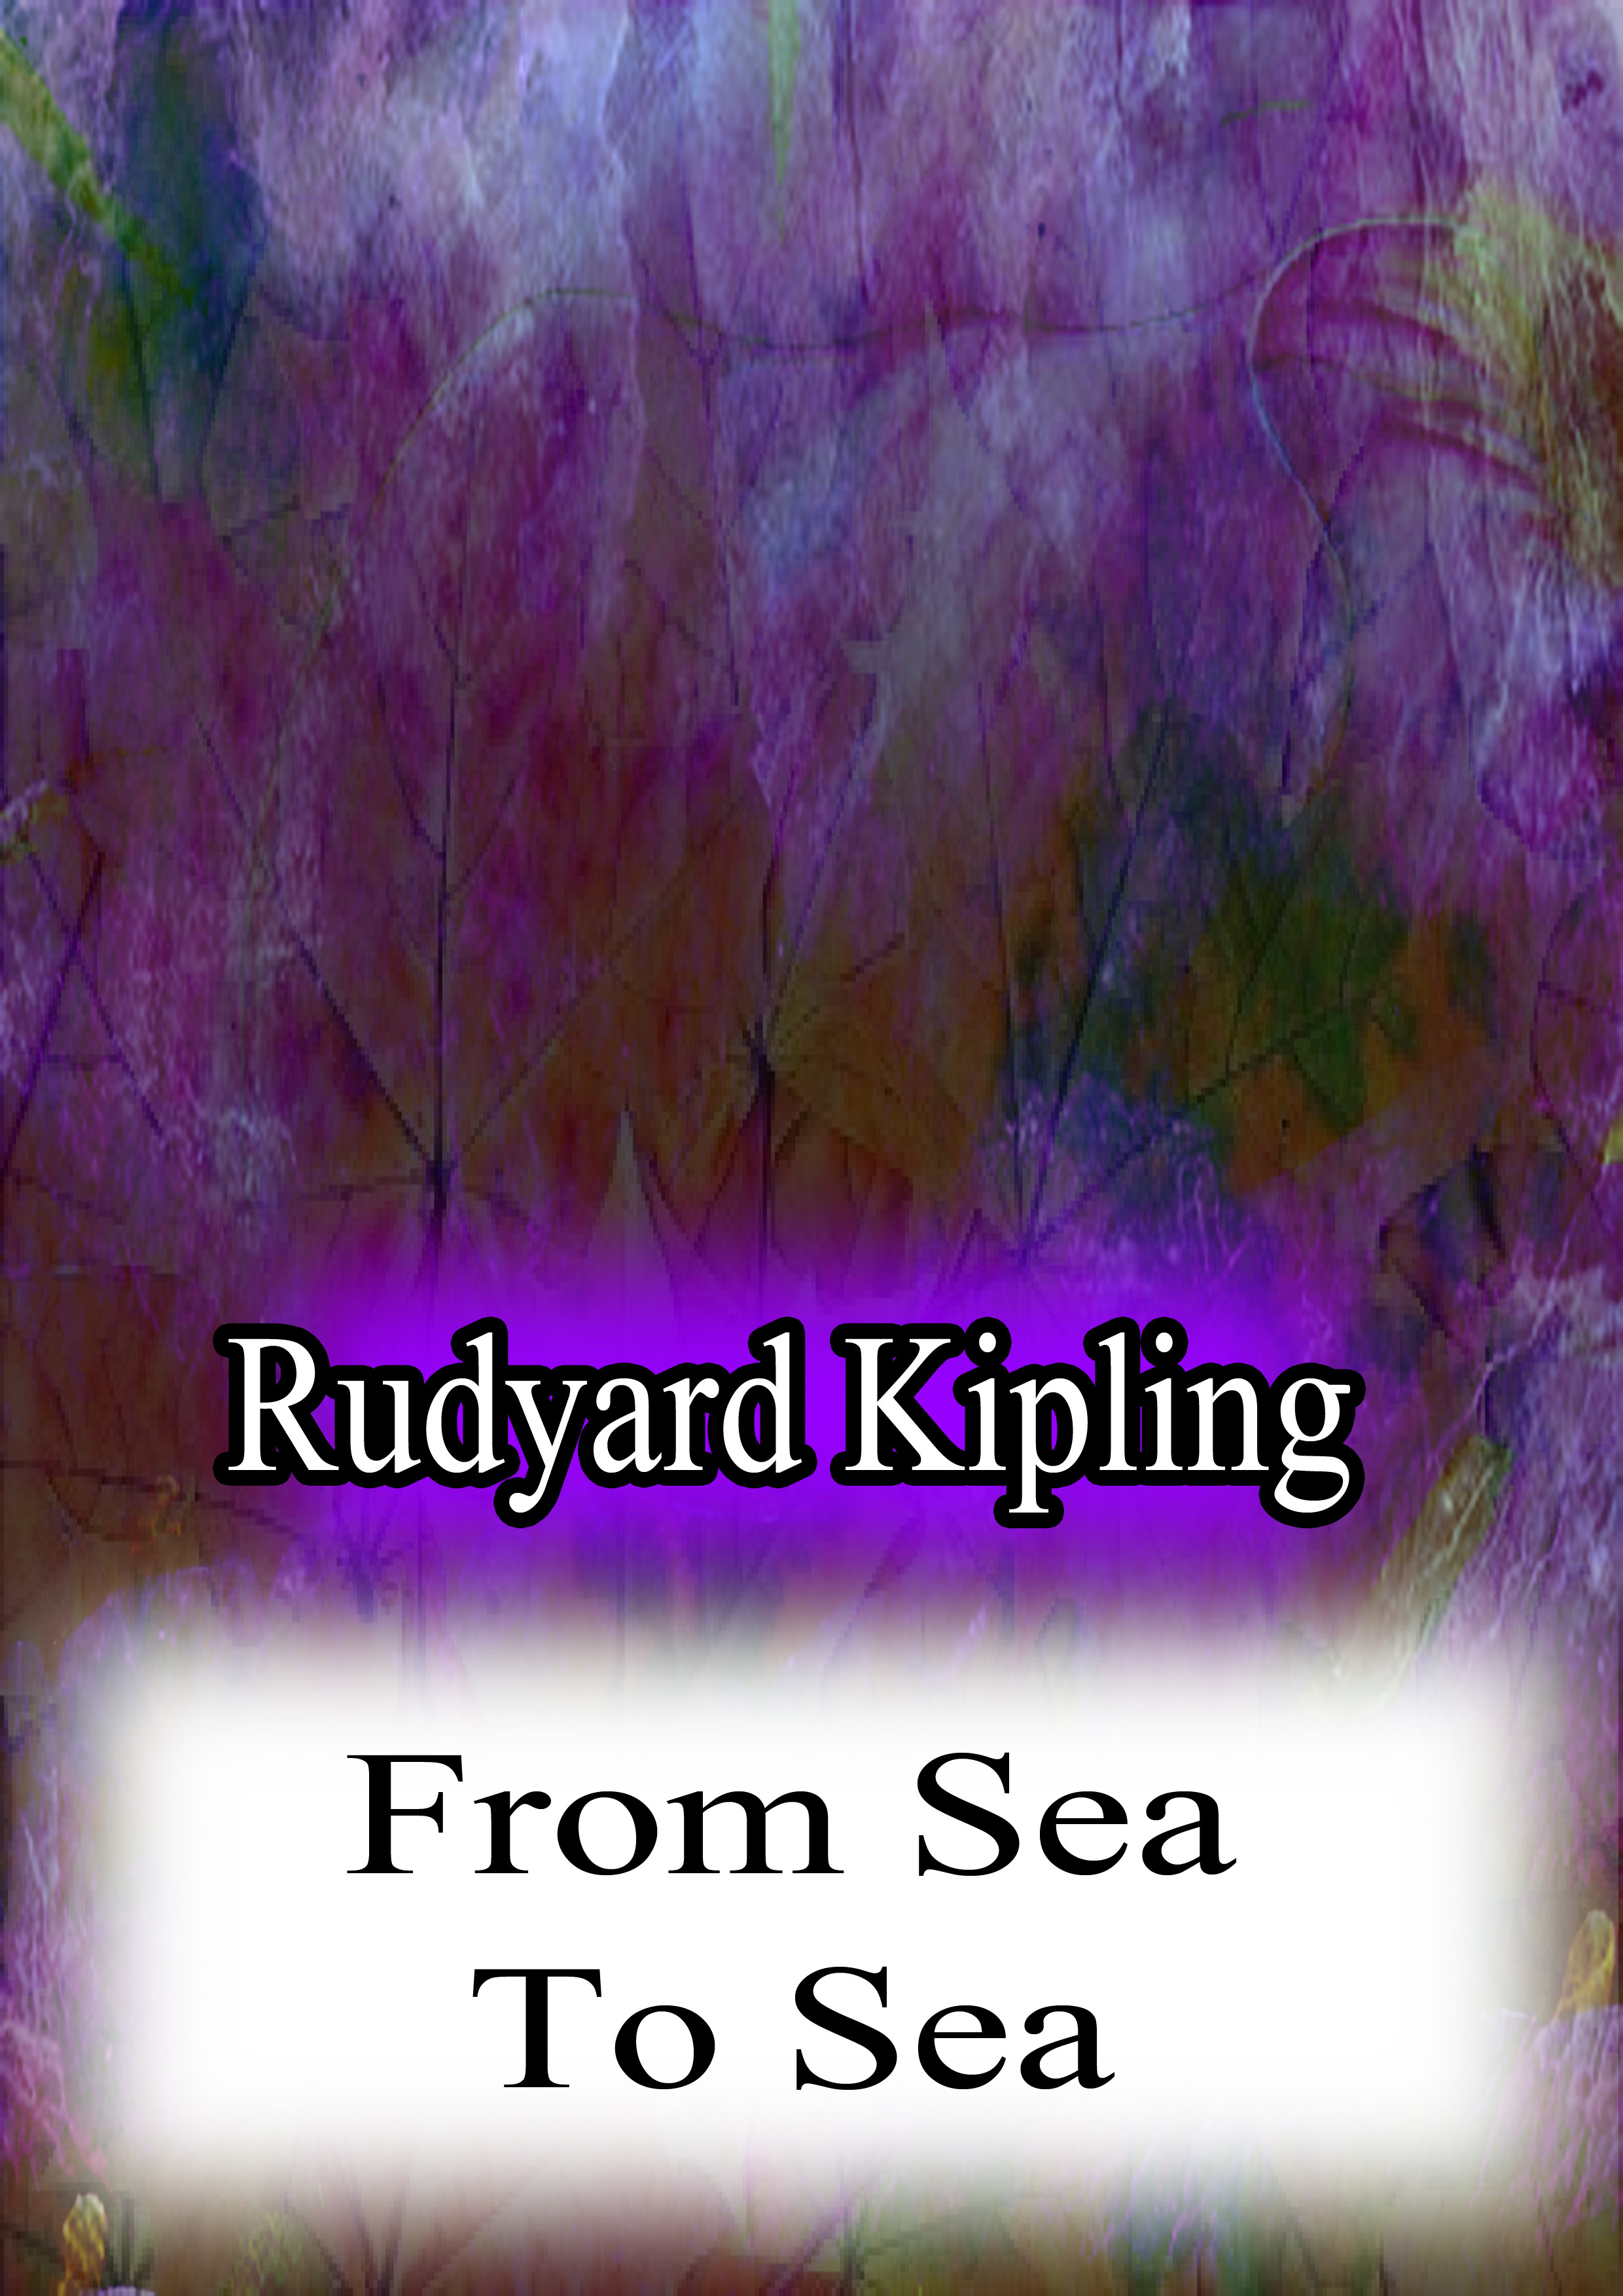 Rudyard Kipling - From Sea To Sea